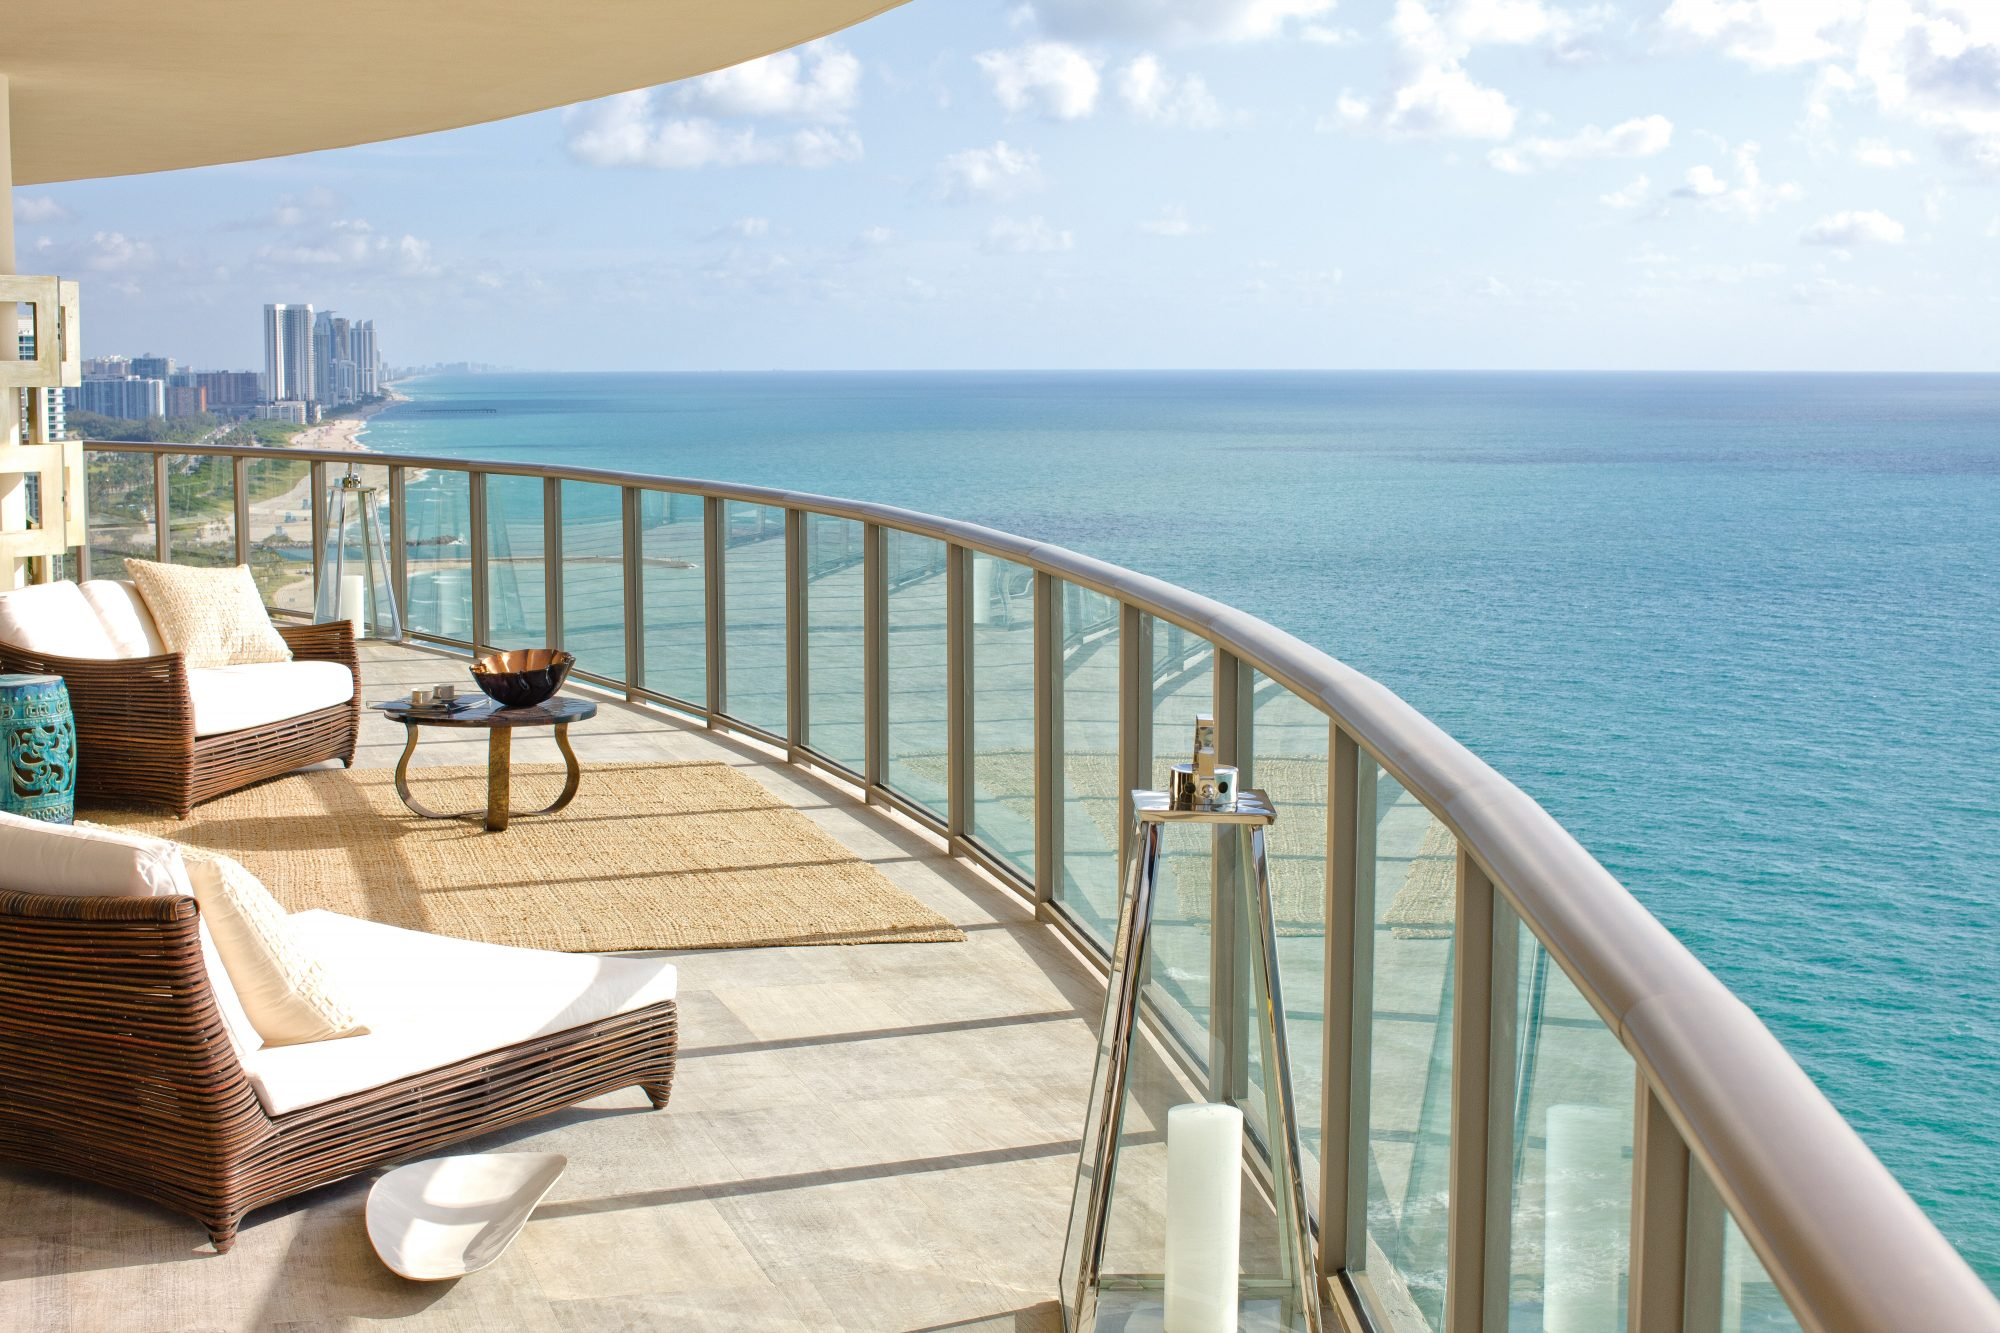 St. Regis Bal Harbour Resort & Residences Miami, Florida